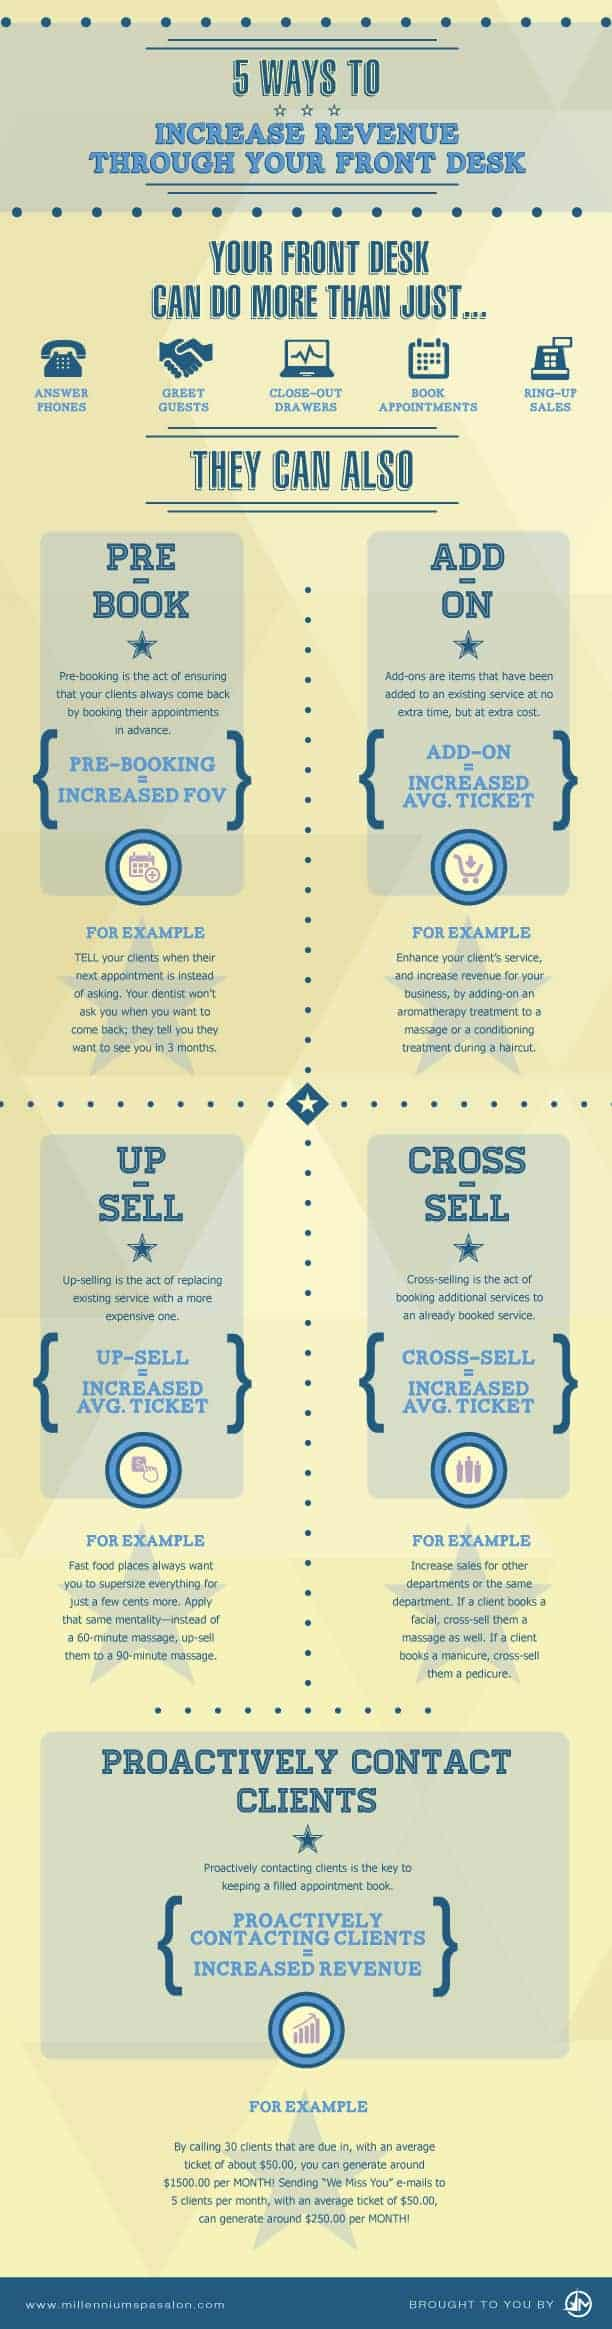 5-ways-to-increase-revenue infographic